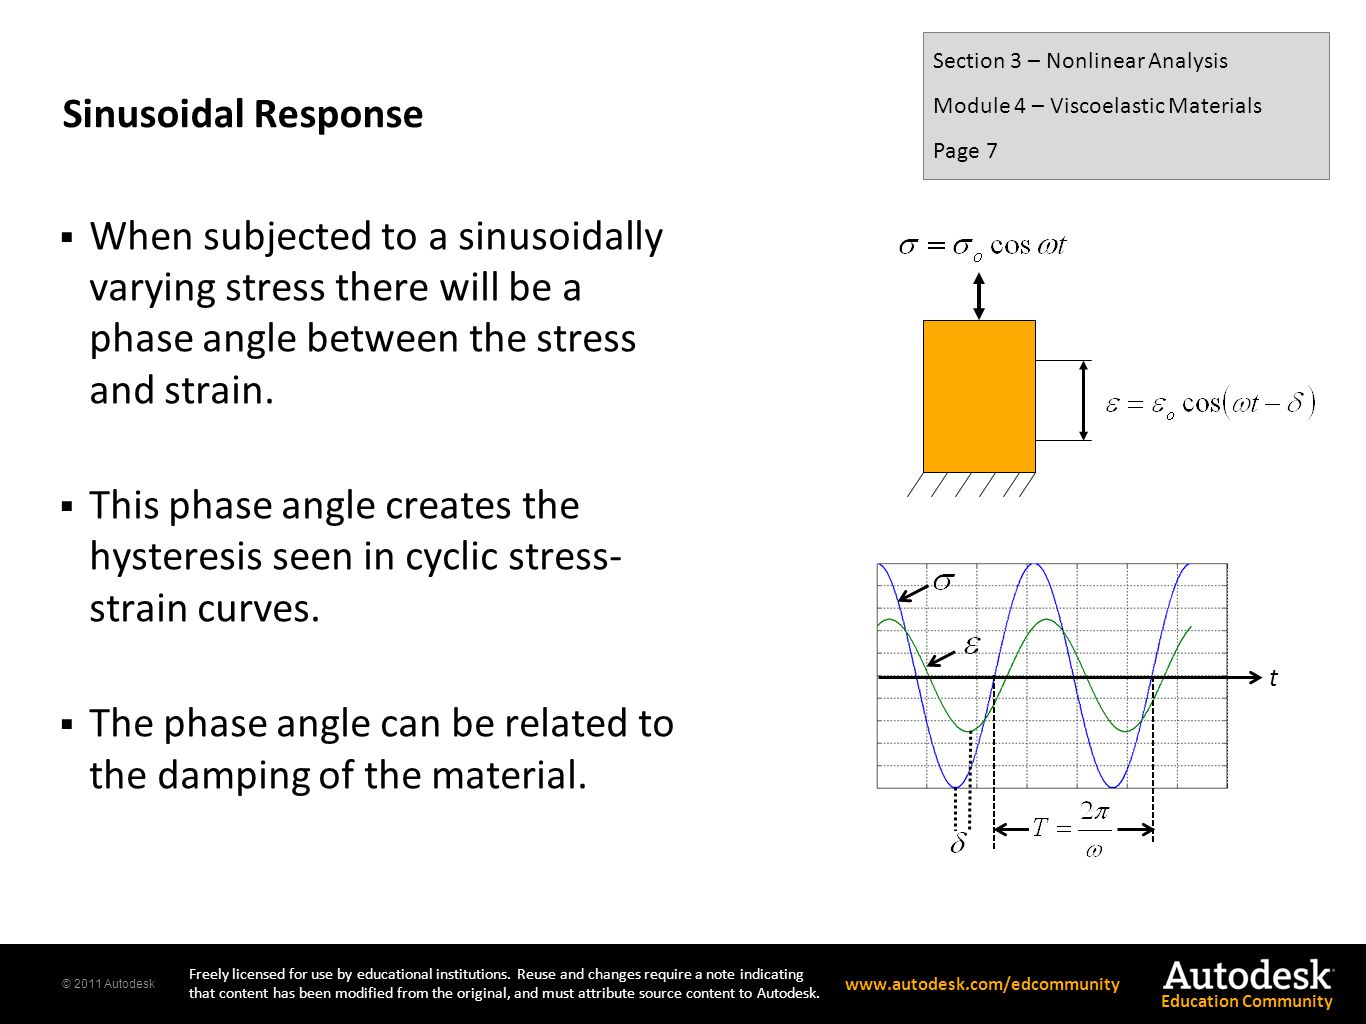 The phase angle can be related to the damping of the material.